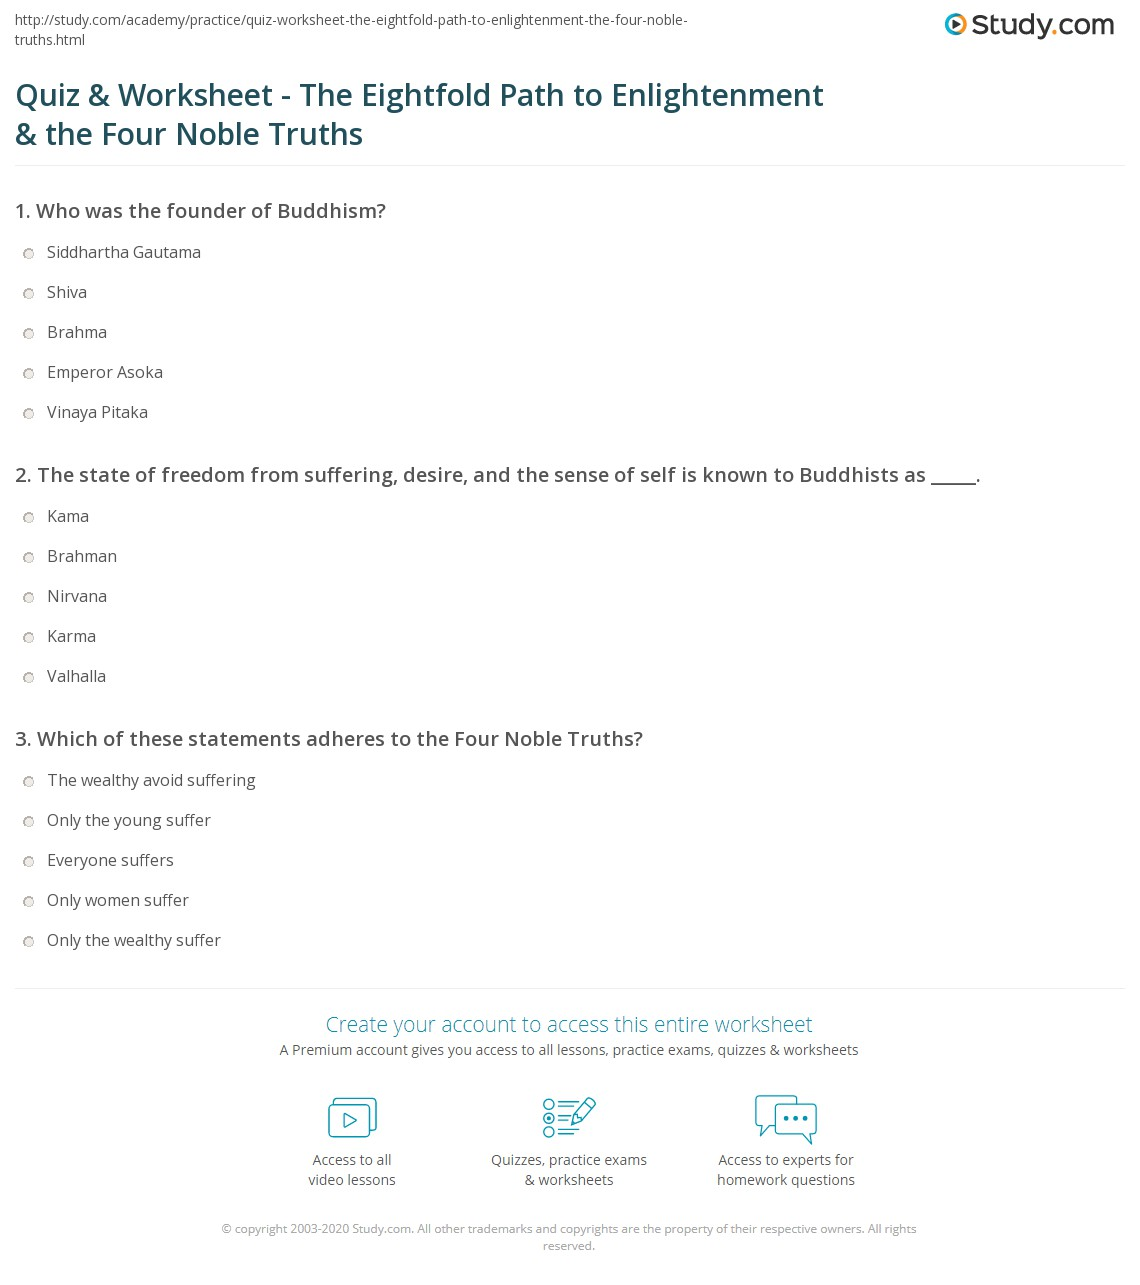 quiz worksheet the eightfold path to enlightenment the four noble truths. Black Bedroom Furniture Sets. Home Design Ideas